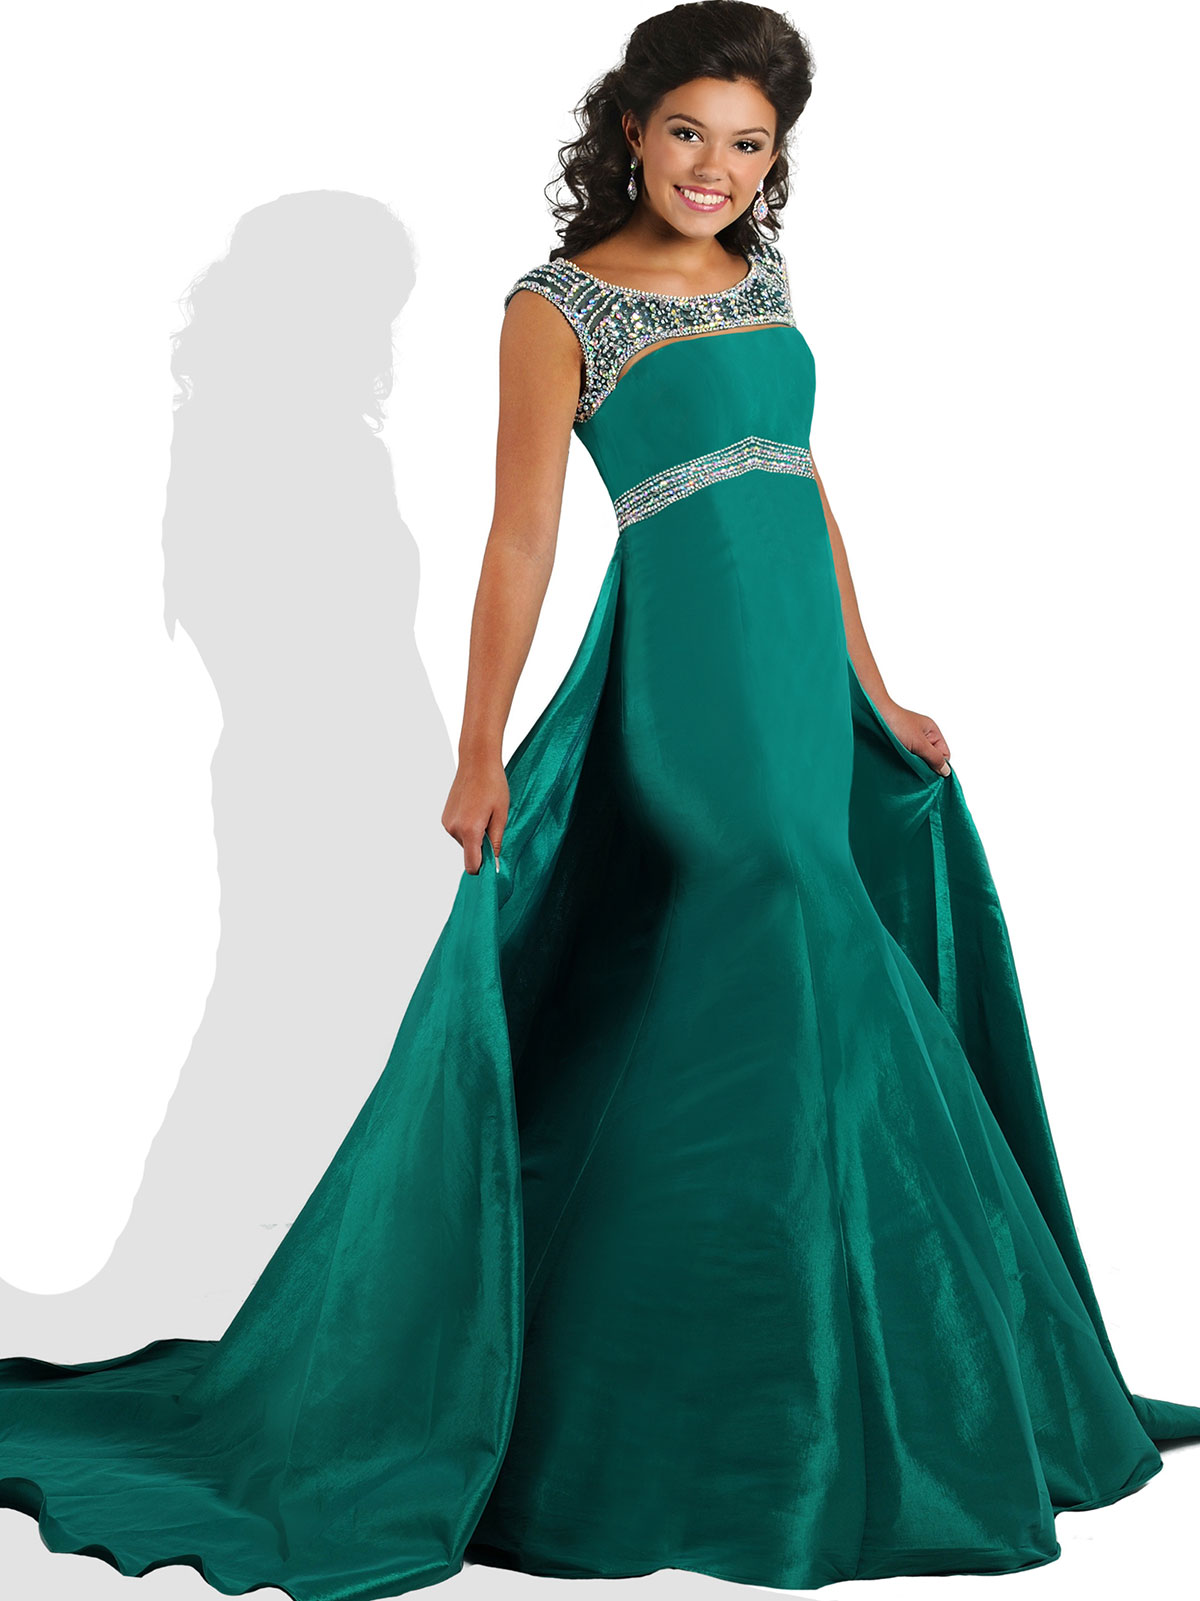 Mermaid Pageant Dress